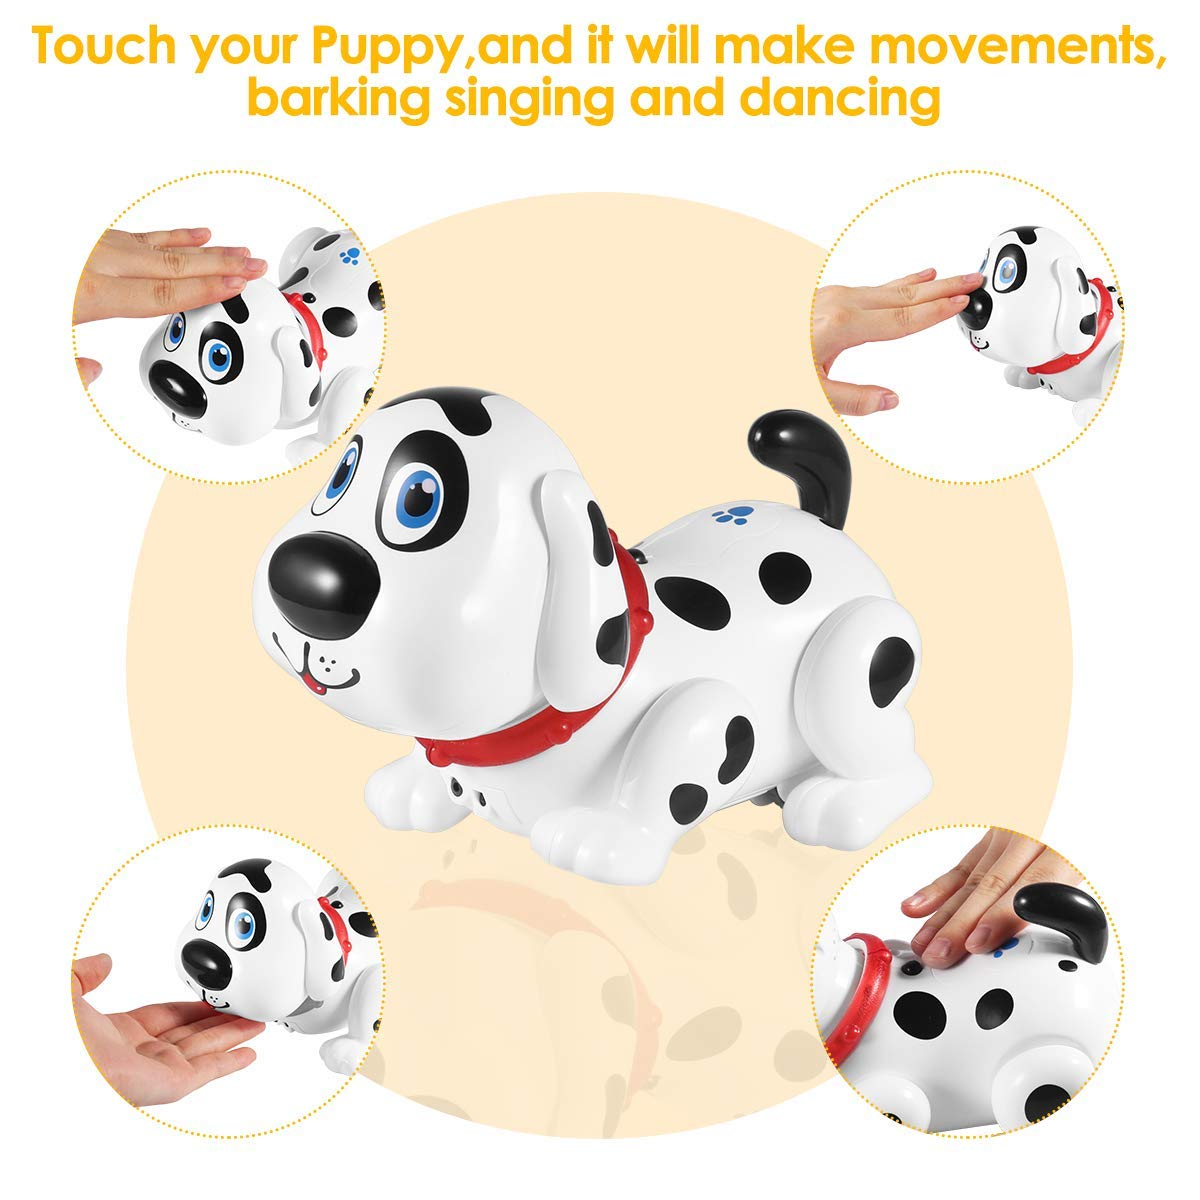 Electronic Dog,Interactive Puppy, Touch with Chasing, Walking, Dancing, Music, Interactive and Induction Toys for Boys or Girls Birthday Gifts by MIGO (Image #7)